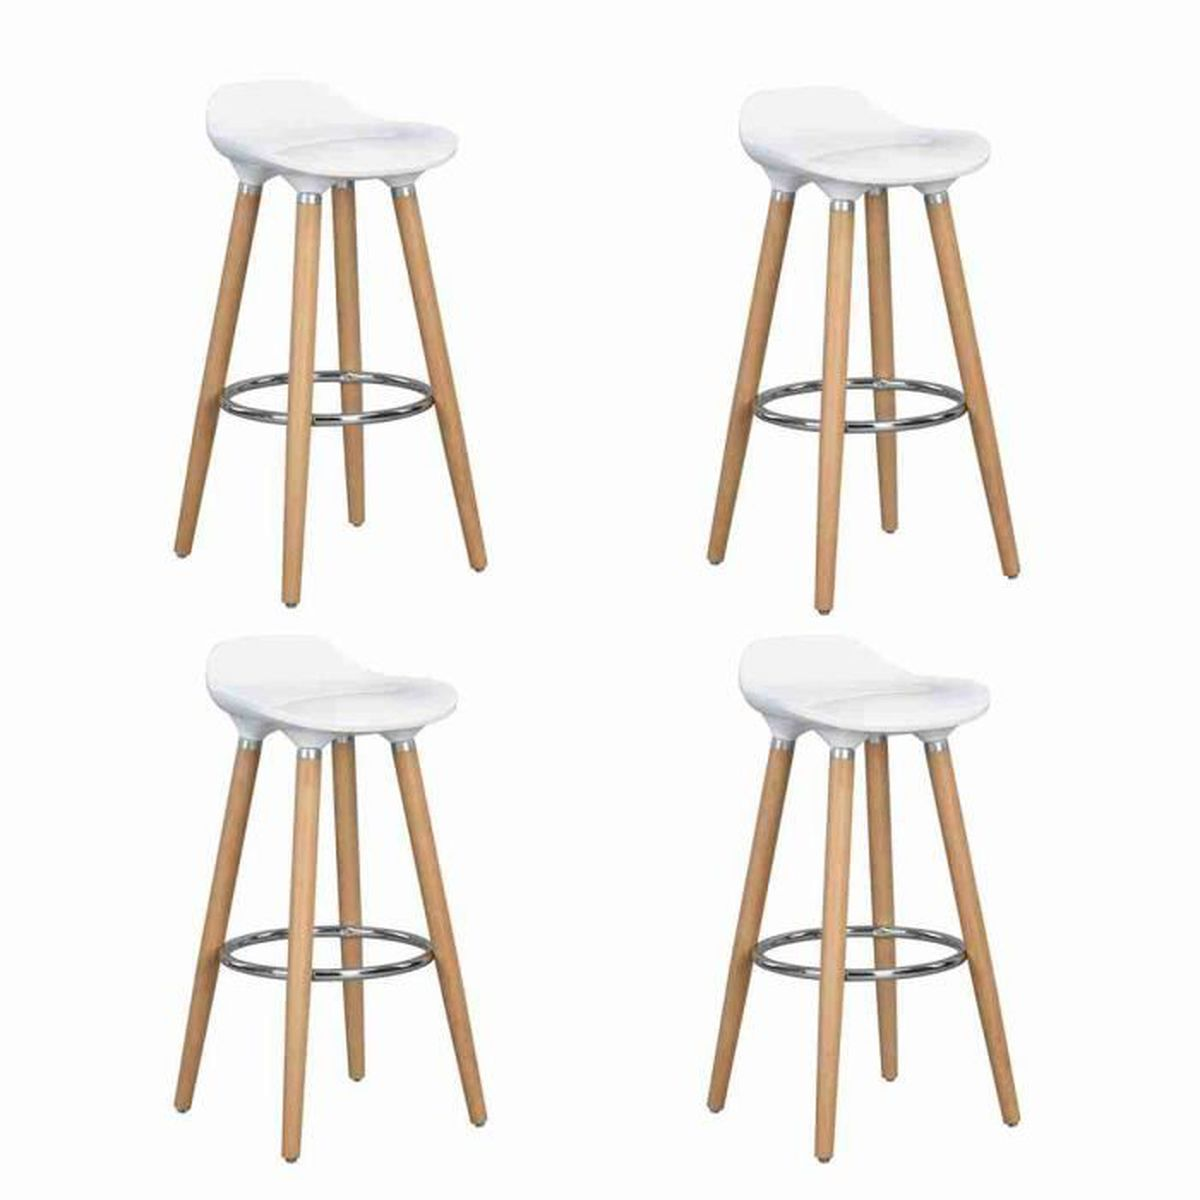 perfect tabouret de bar pas cher tabourets avec ou sans dossier ikea with tabouret snack ikea. Black Bedroom Furniture Sets. Home Design Ideas